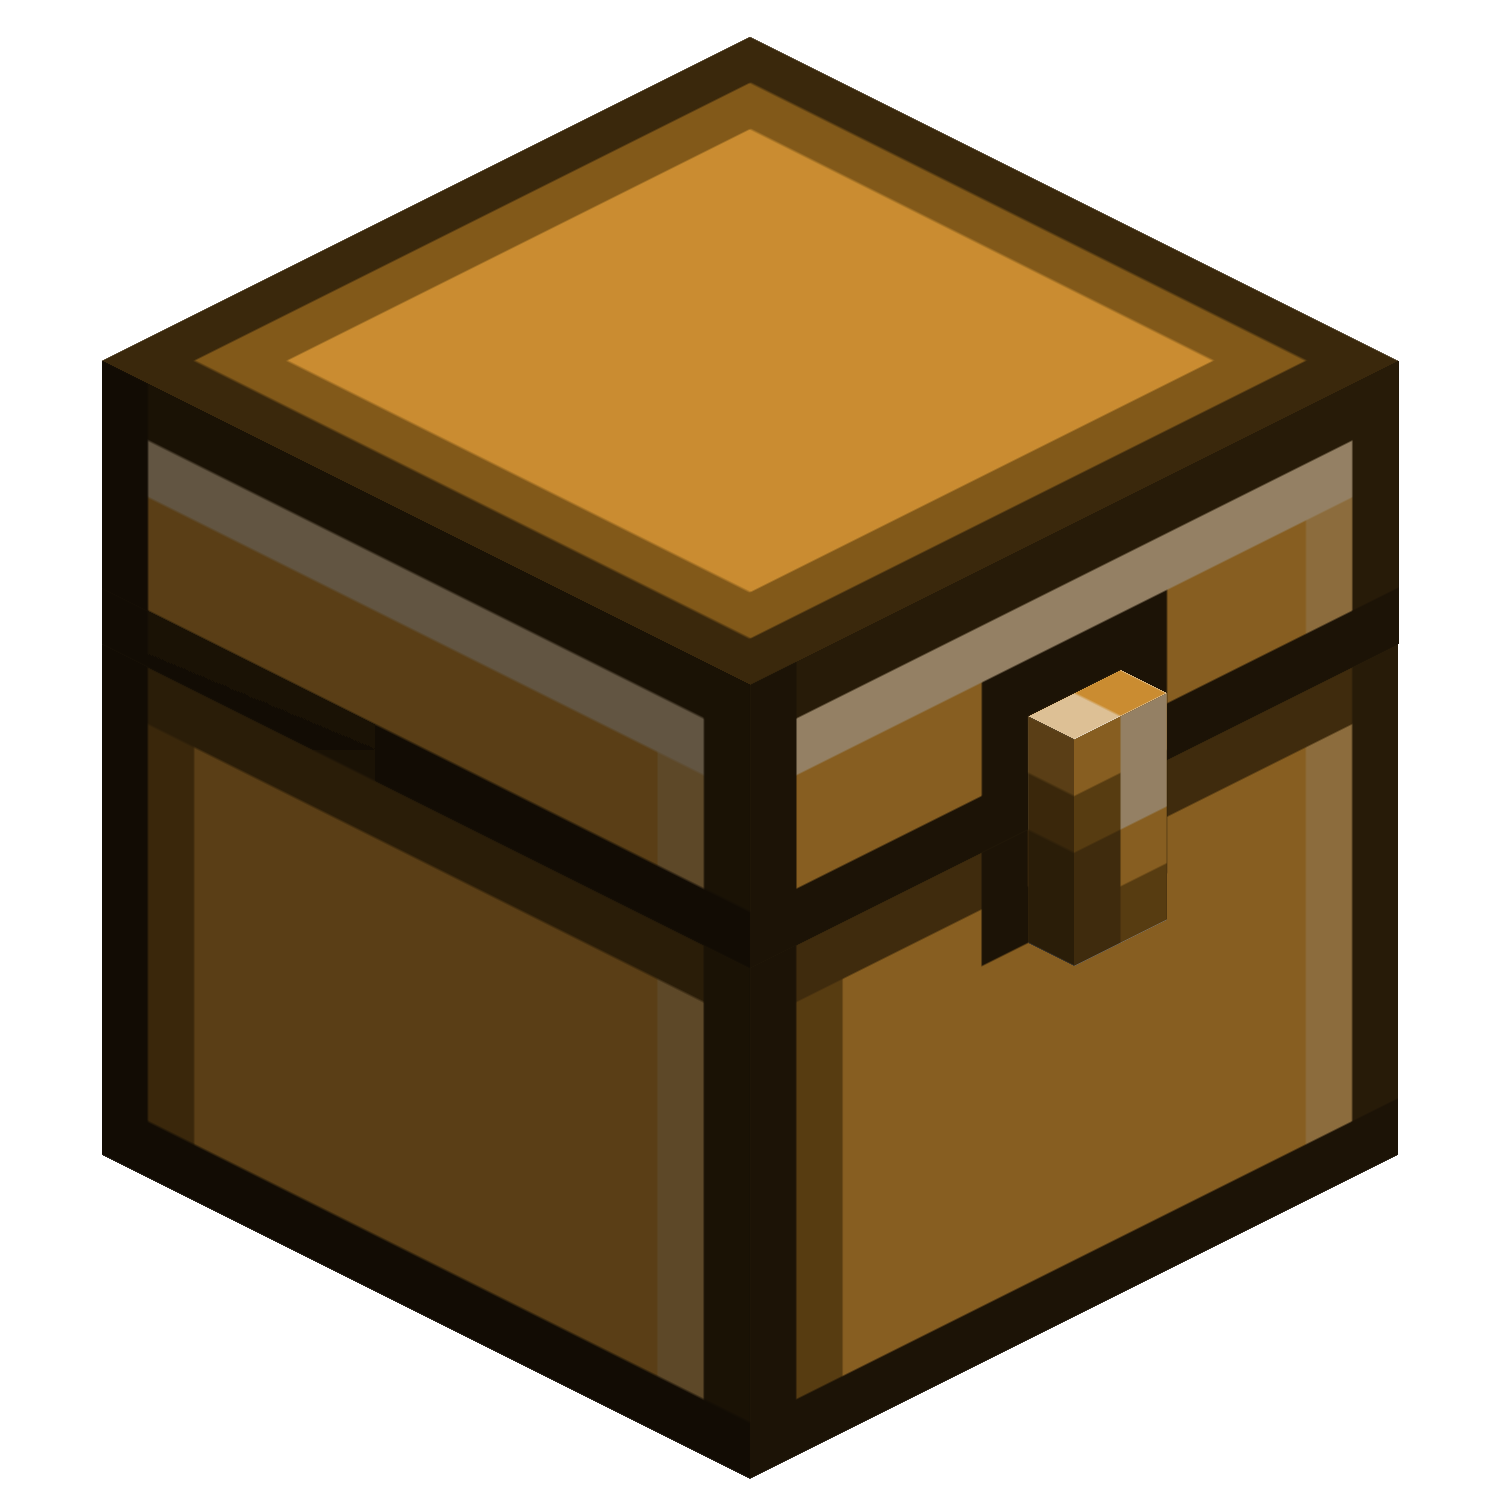 Minecraft chest png. Image brass m universe